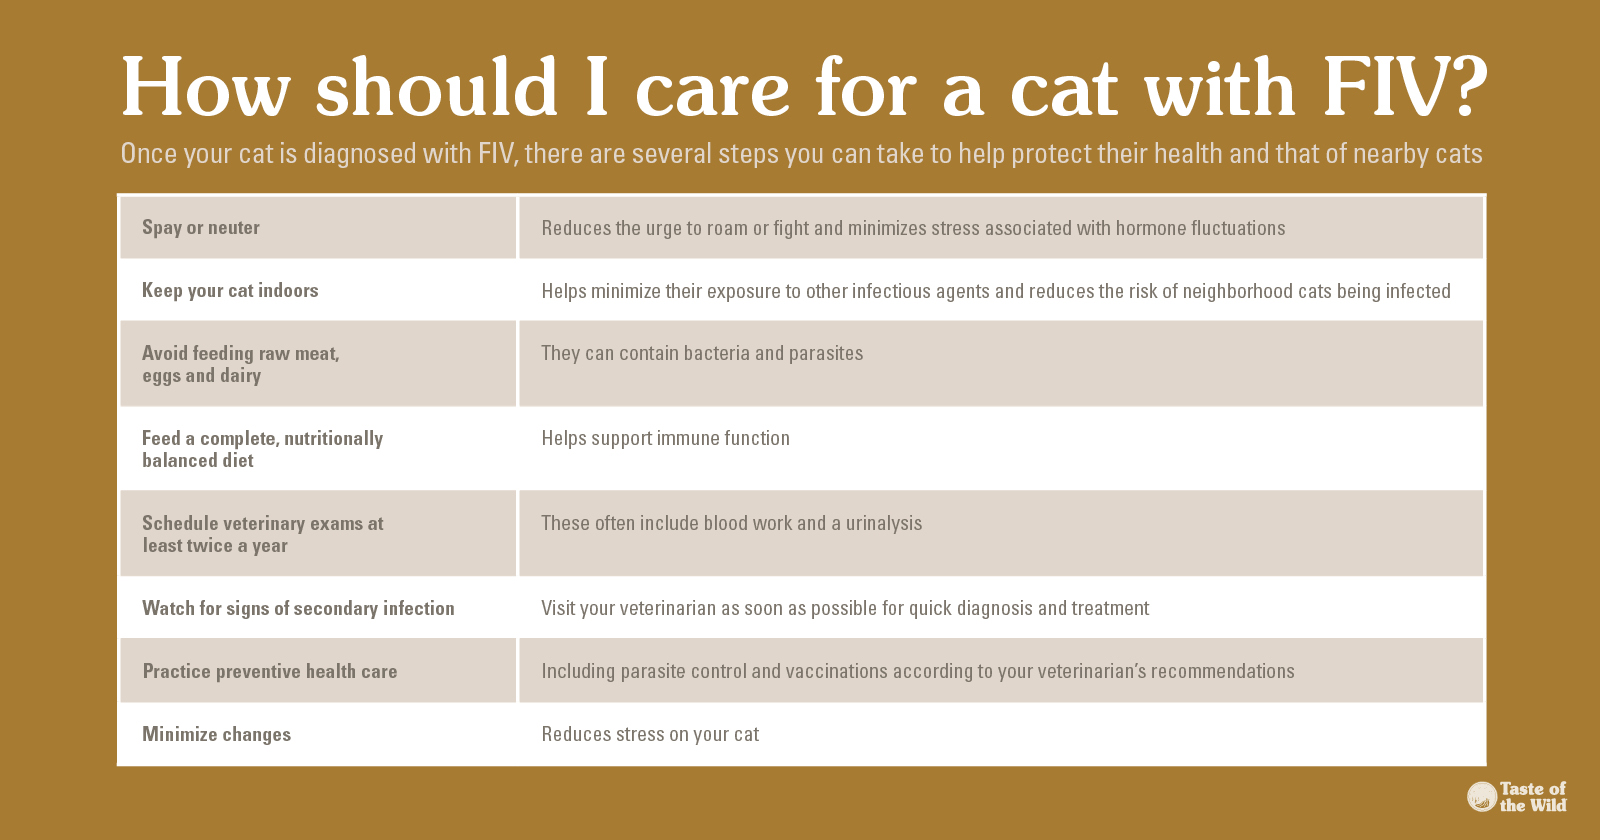 Caring for a Cat with FIV Chart | Taste of the Wild